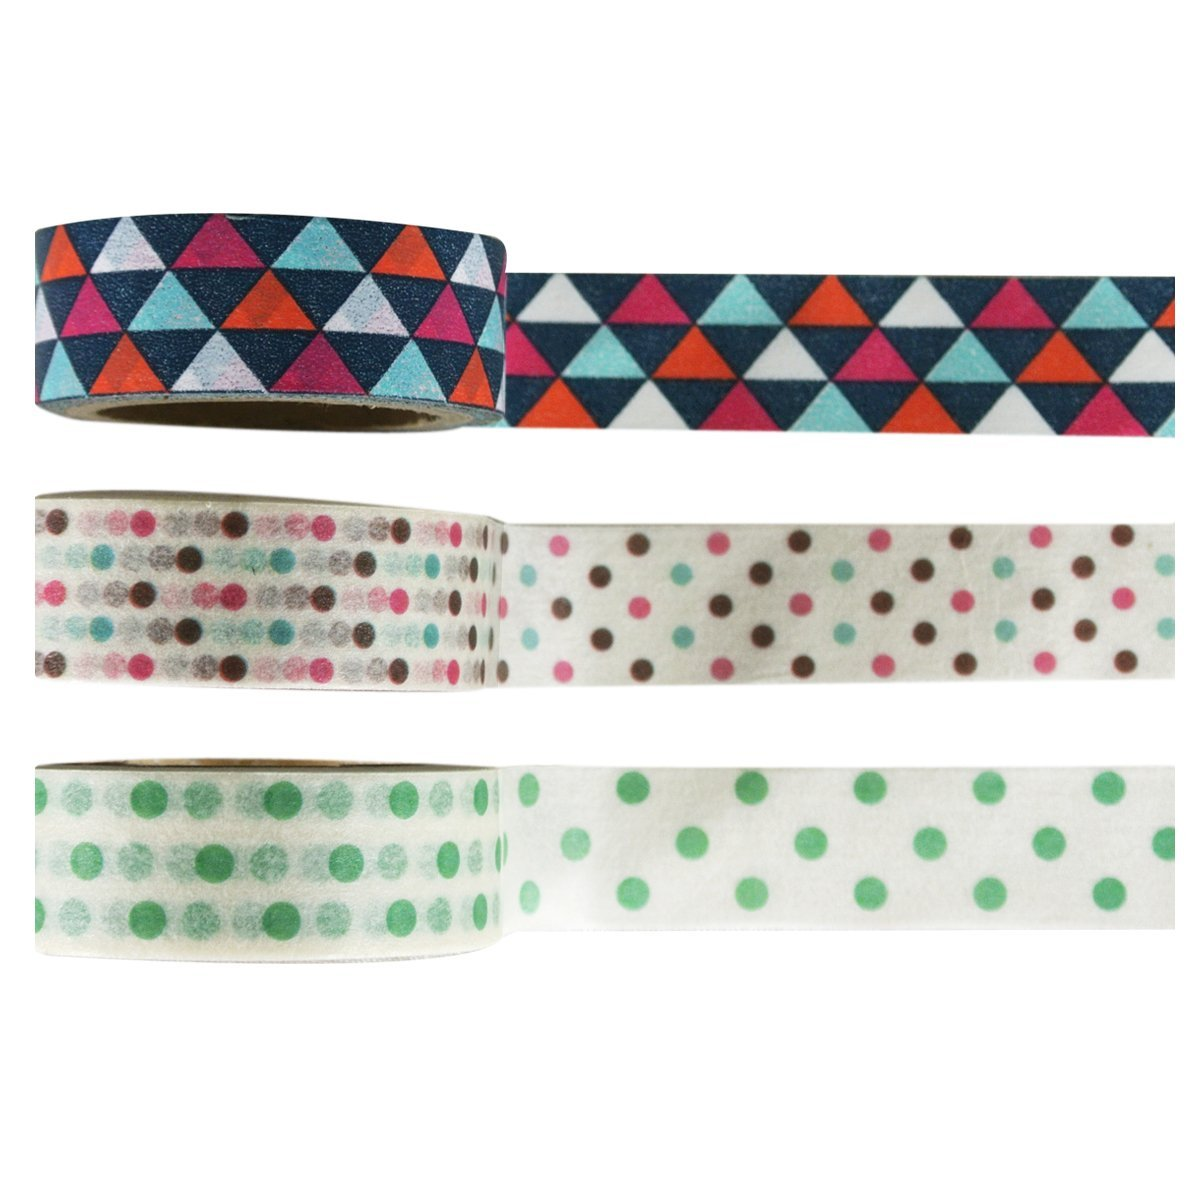 Wrapables Dots & Wedges Japanese Washi Masking Tape (Set of 3)